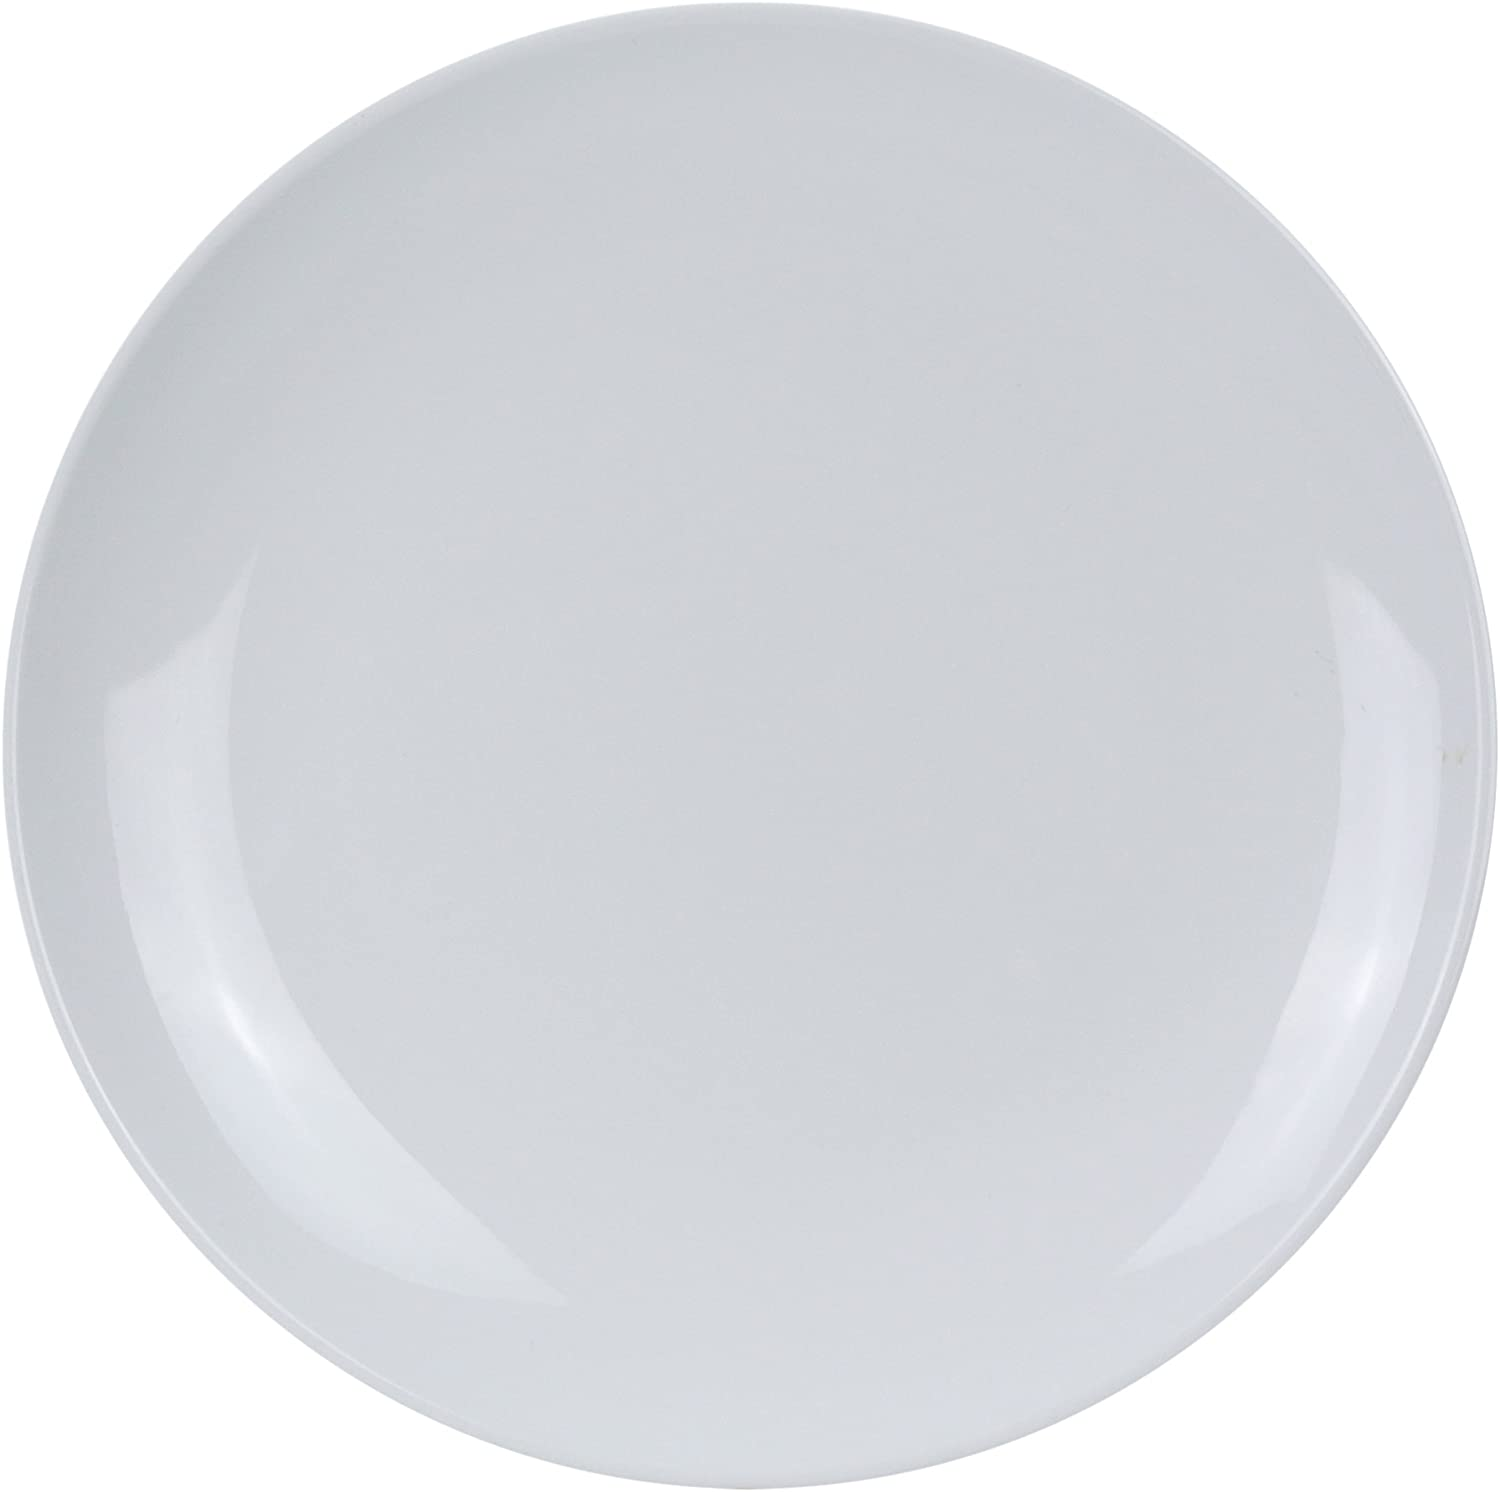 Yanco CO-107 Coupe Pattern Round Plate, 7  Diameter, Melamine, White color, Pack of 48